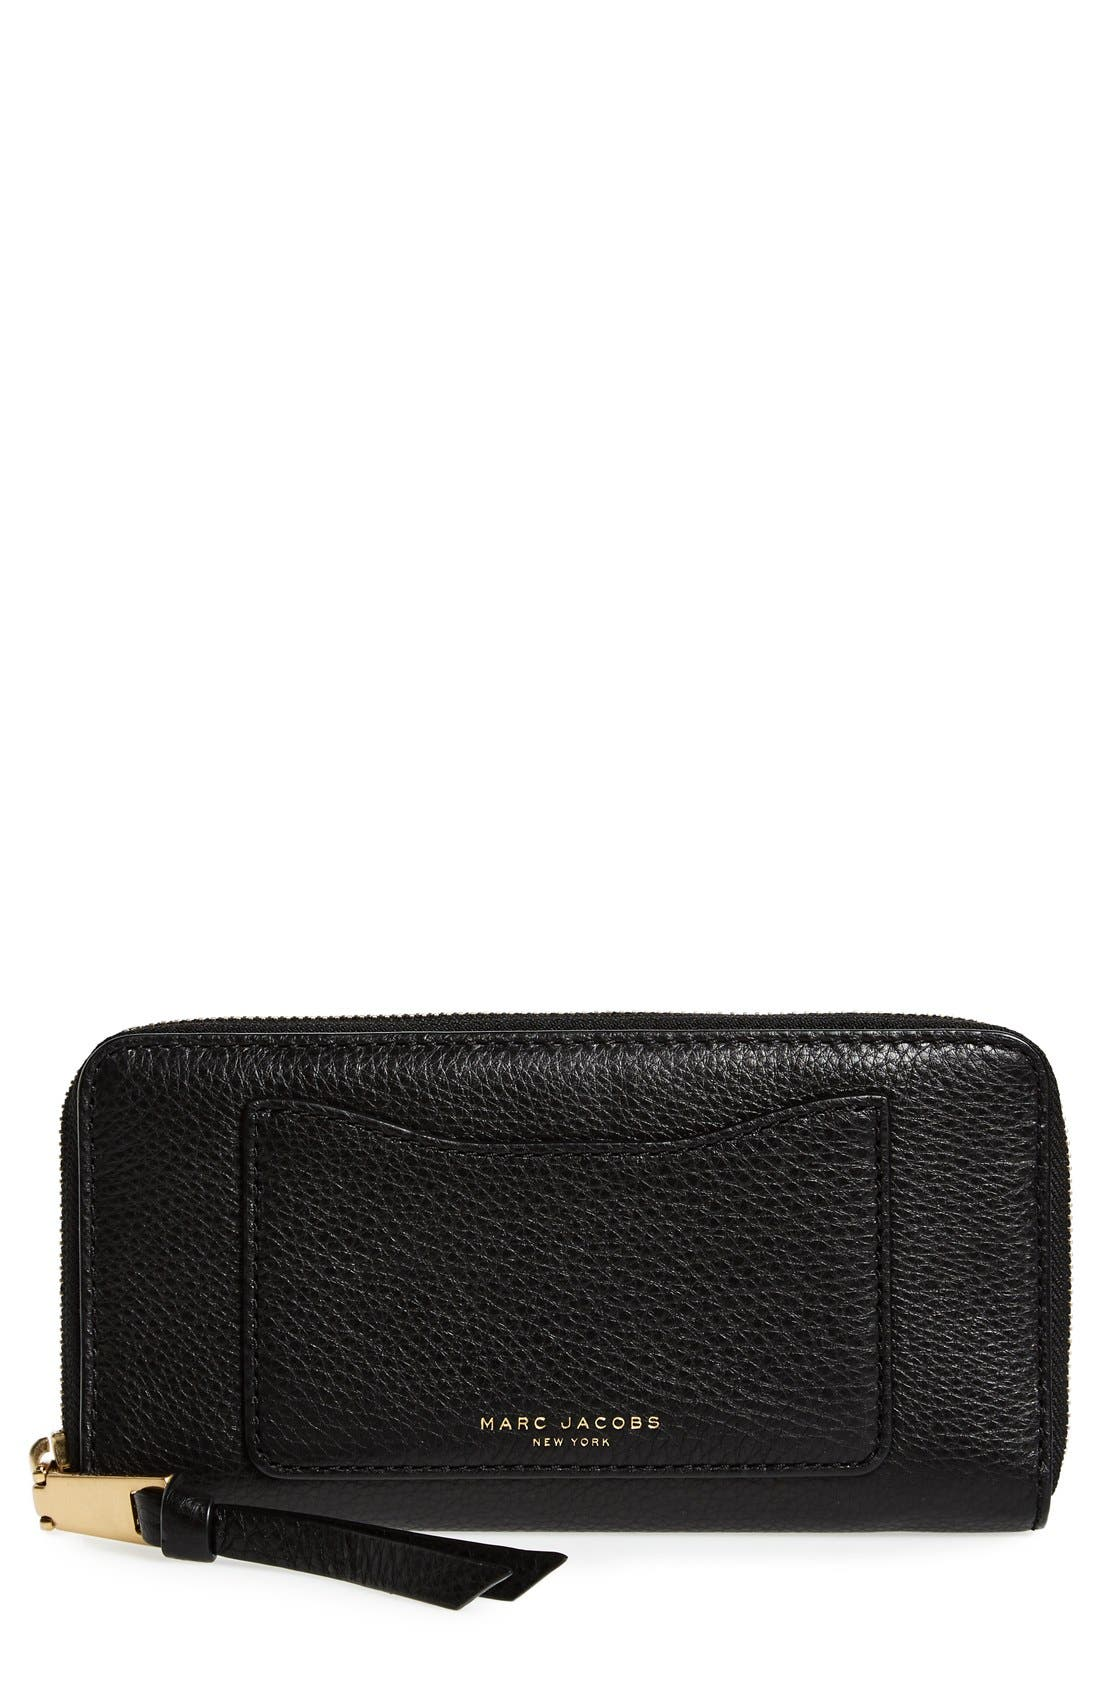 MARC JACOBS Recruit Vertical Leather Wallet